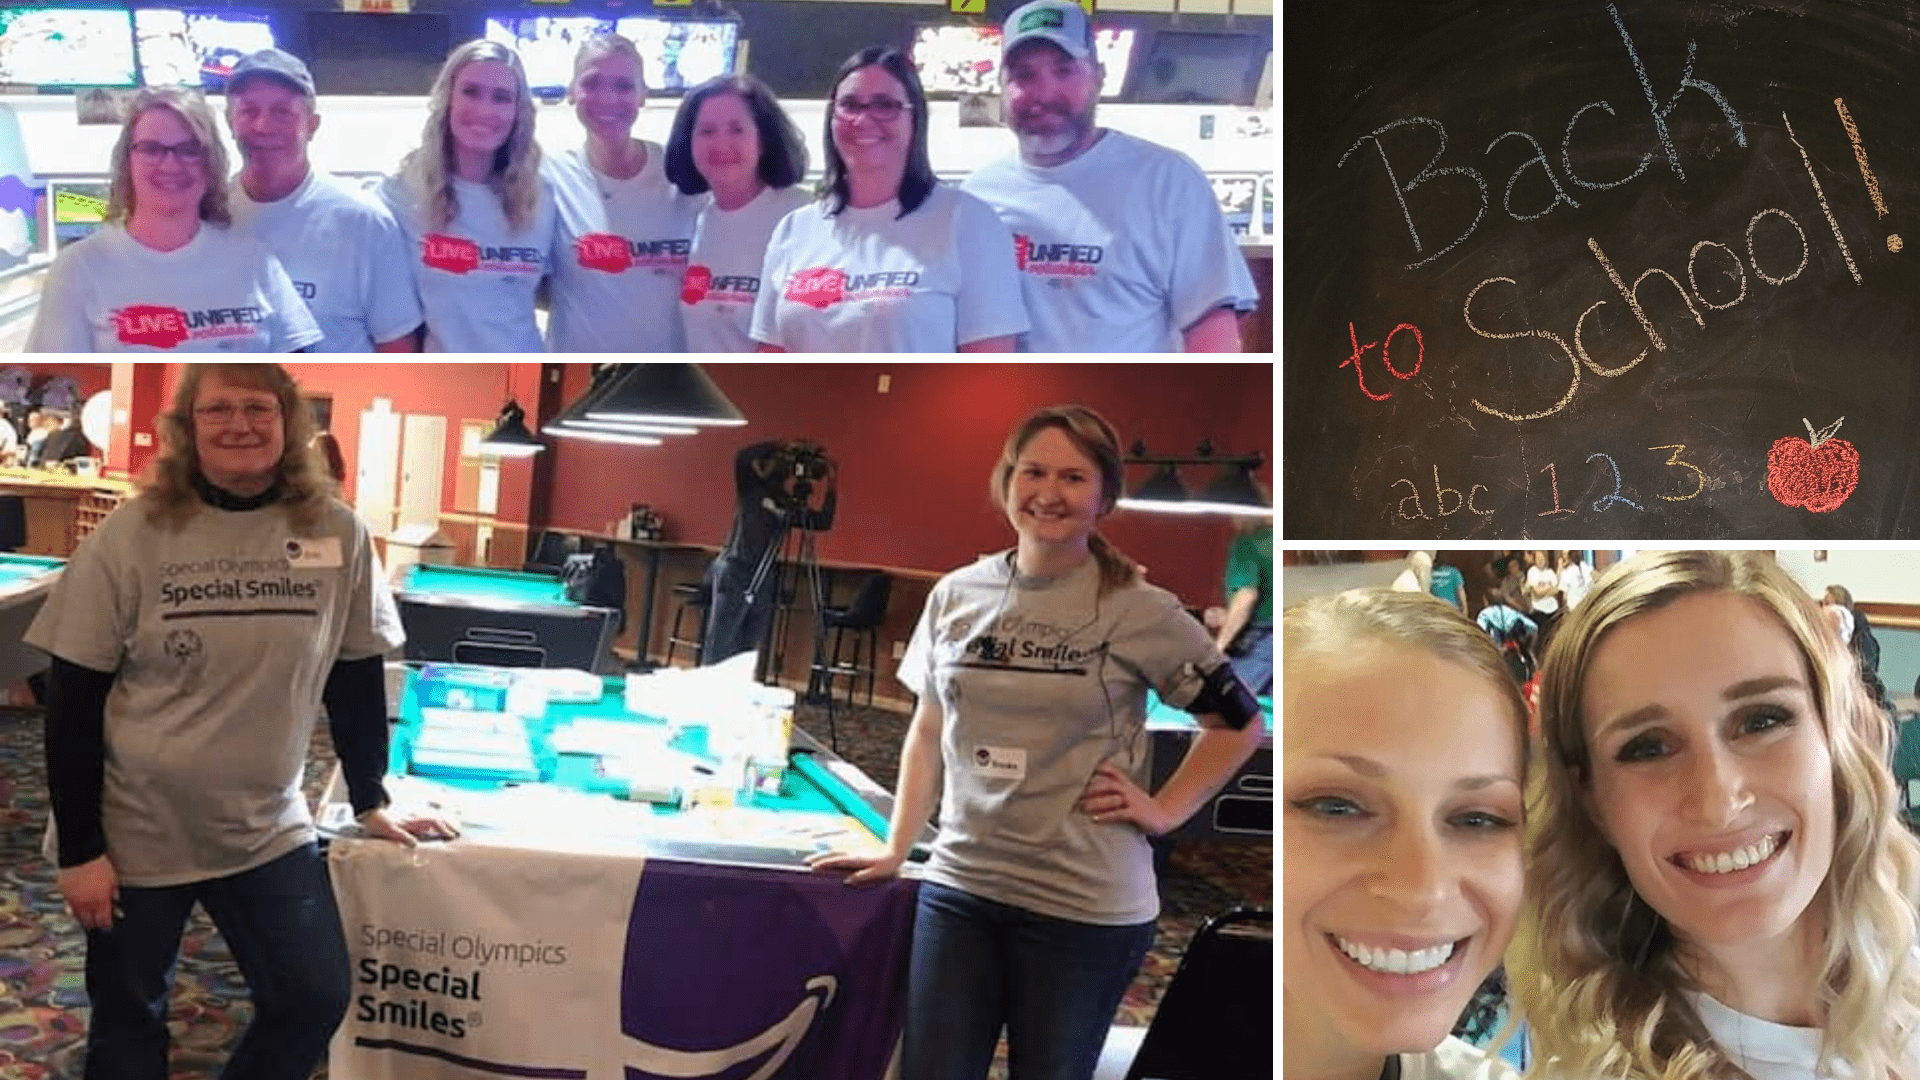 Collage of the Fox Valley Dental team participating in several charity events, supply drives, fundraisers, and community events